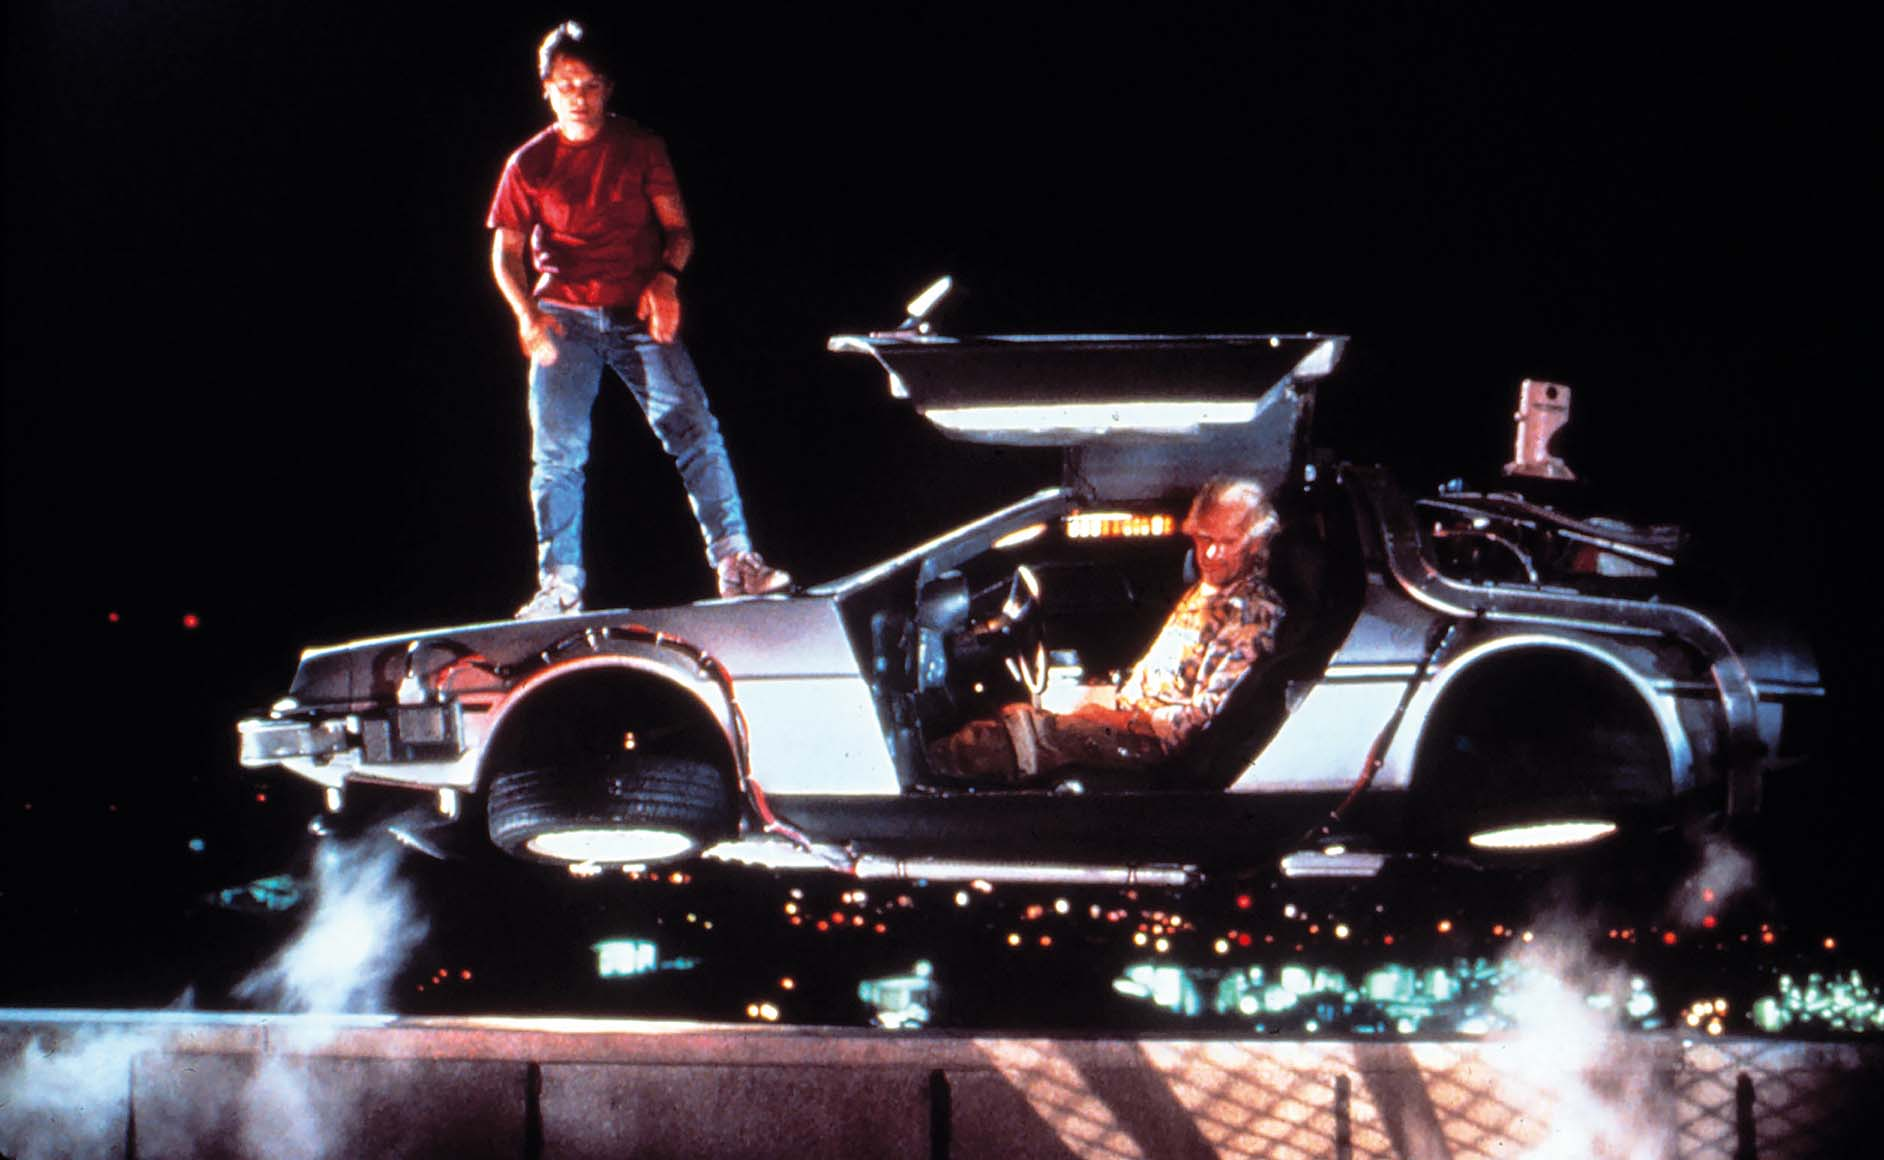 BACK TO THE FUTURE PART II, Michael J. Fox, Christopher Lloyd, 1989. (c) Universal Pictures/ Courtesy: Everett Collection.